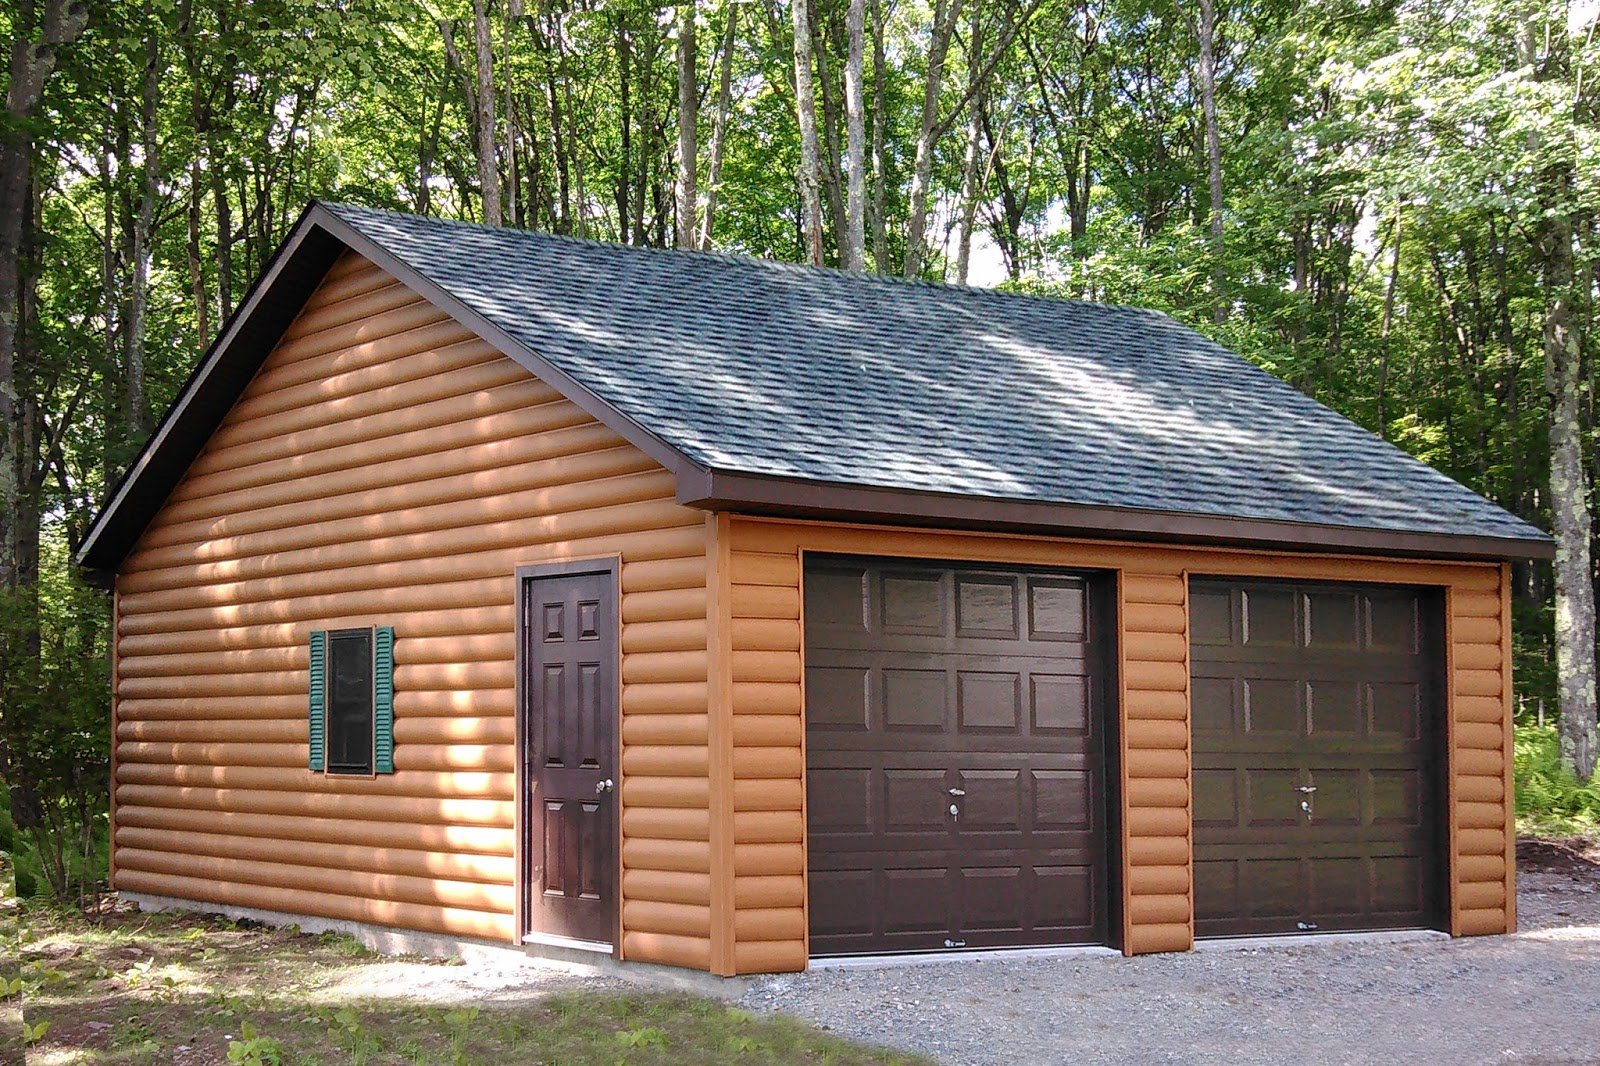 Prefab car garages for sale in pa nj ny ct de md va for Single car garage with apartment